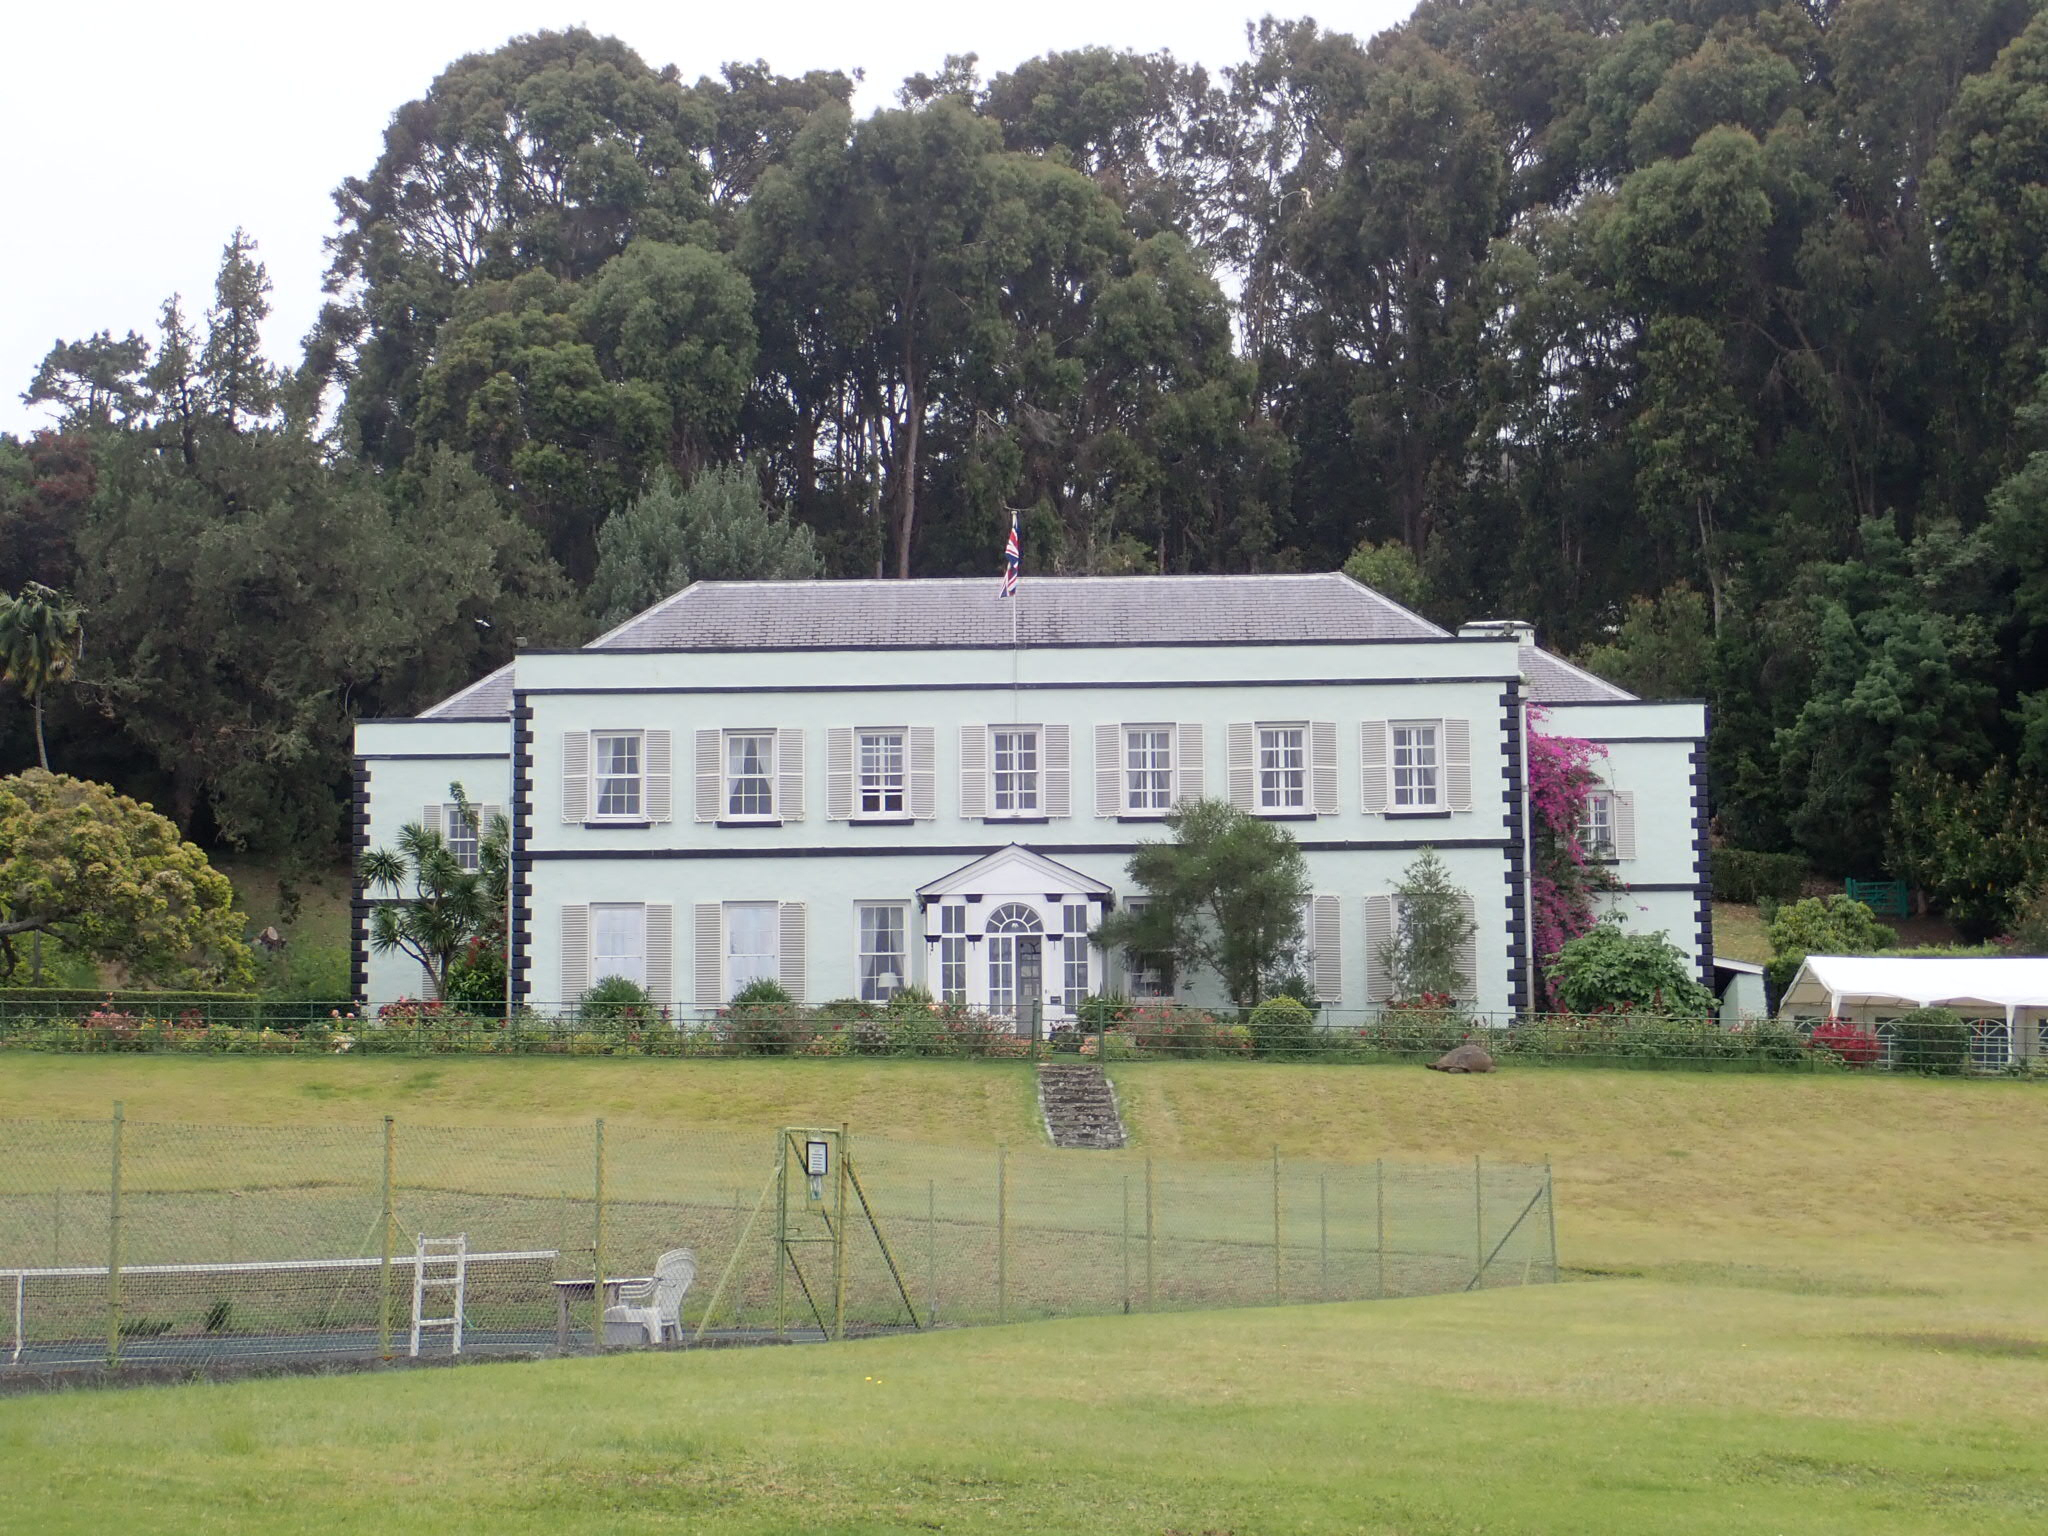 The Governor's residence